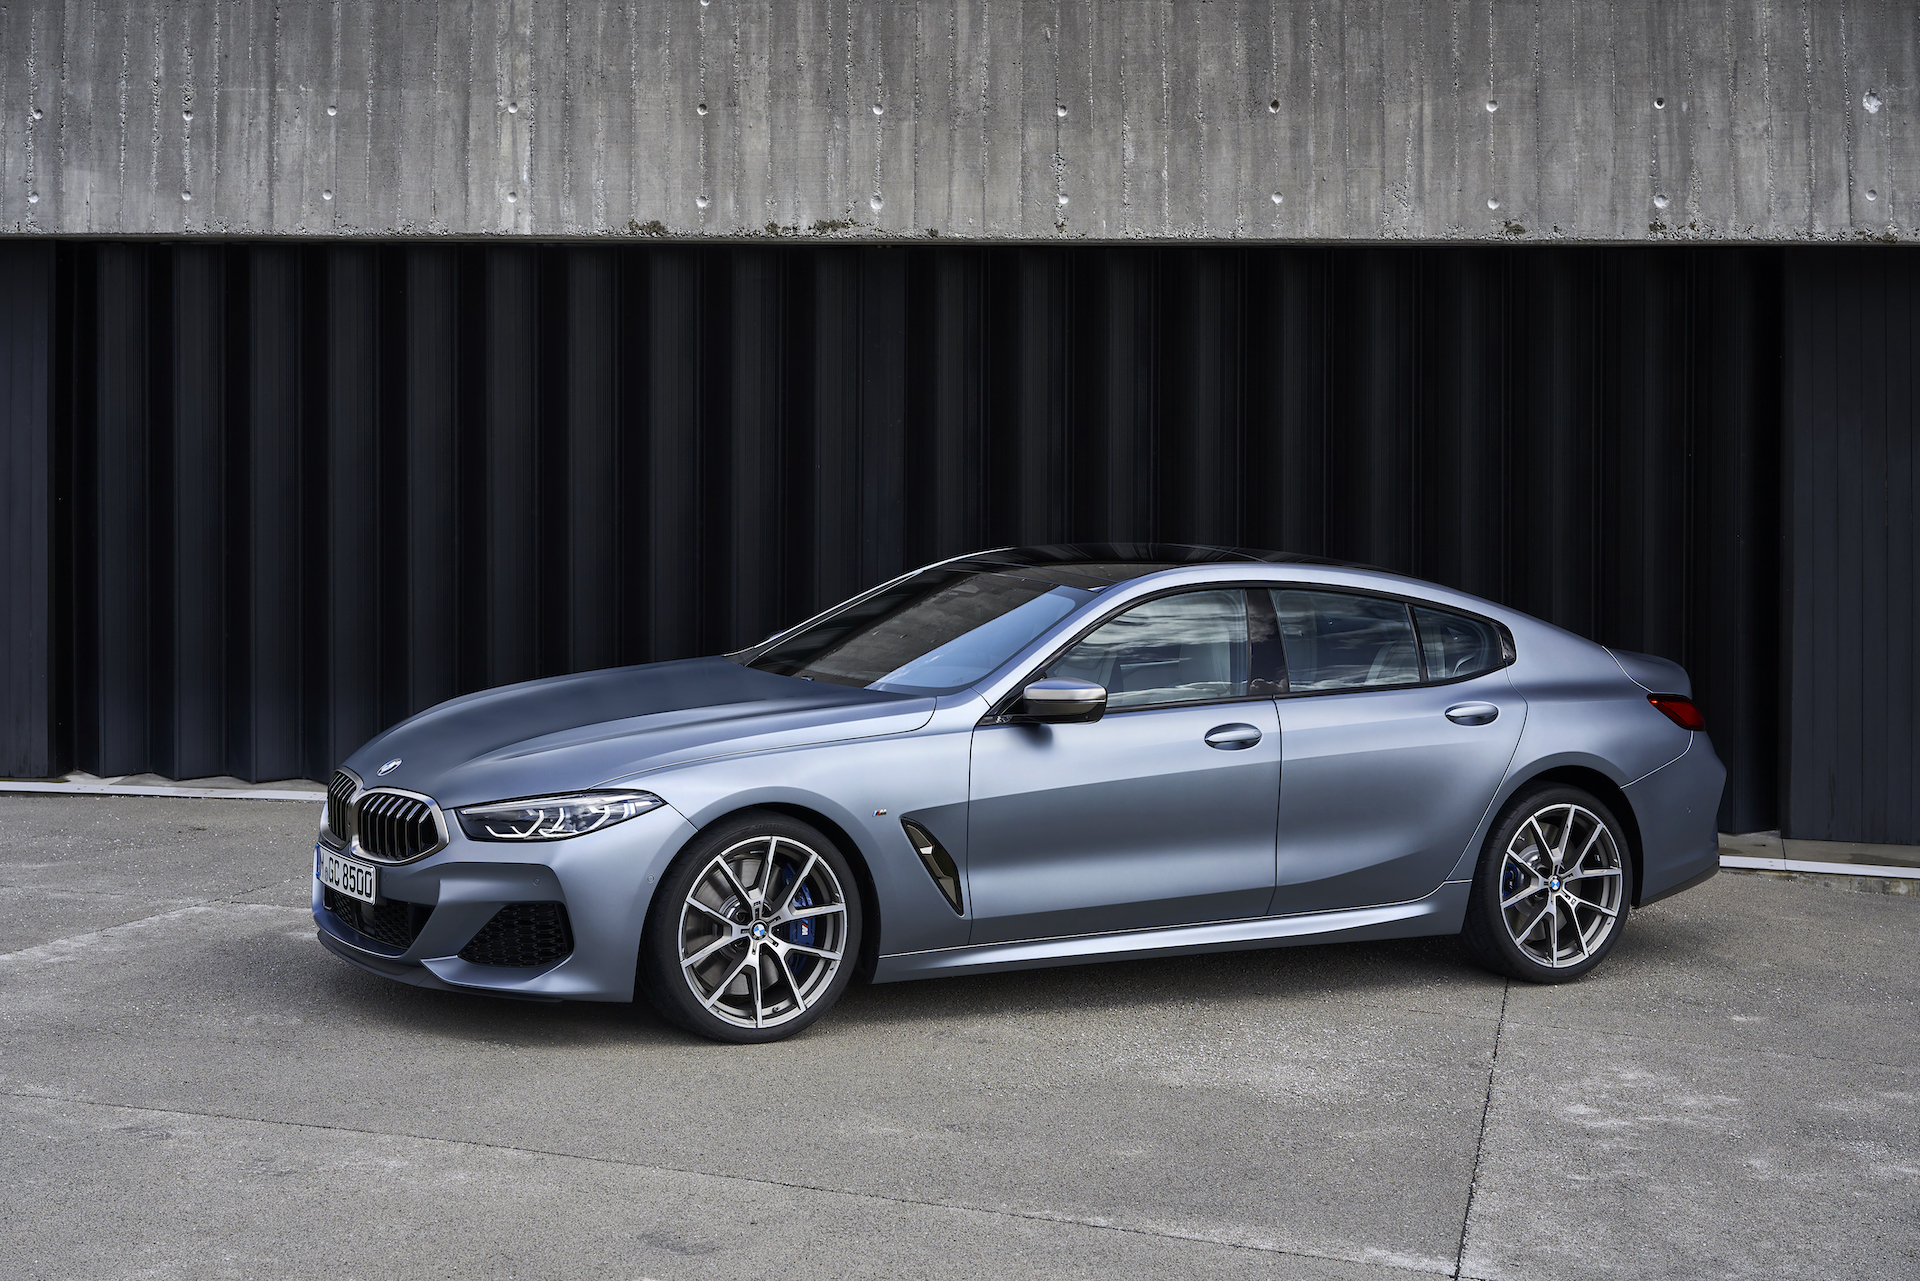 New And Used Bmw 8 Series Prices Photos Reviews Specs The Car Connection